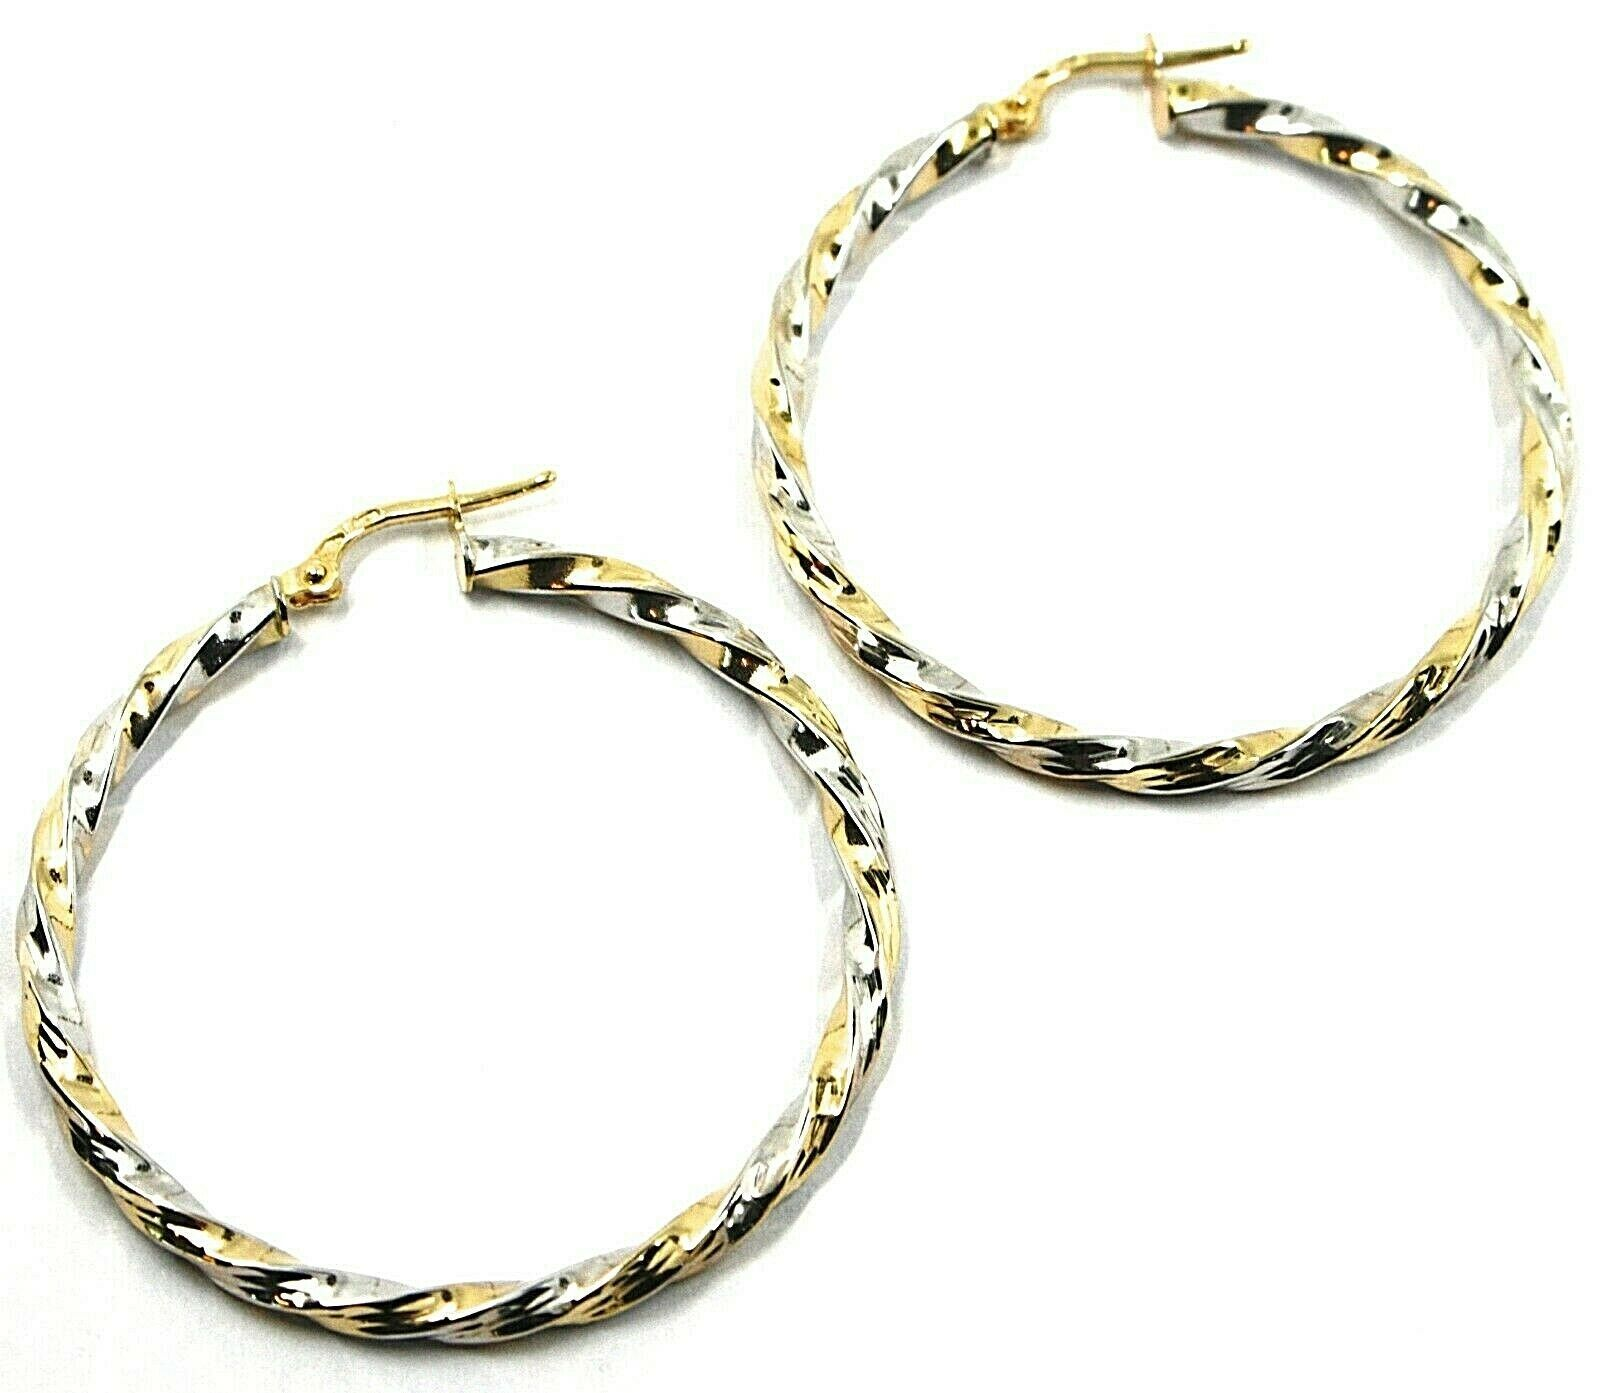 18K YELLOW WHITE GOLD CIRCLE HOOPS PENDANT EARRINGS, 4 cm x 3mm TWISTED, BRAIDED